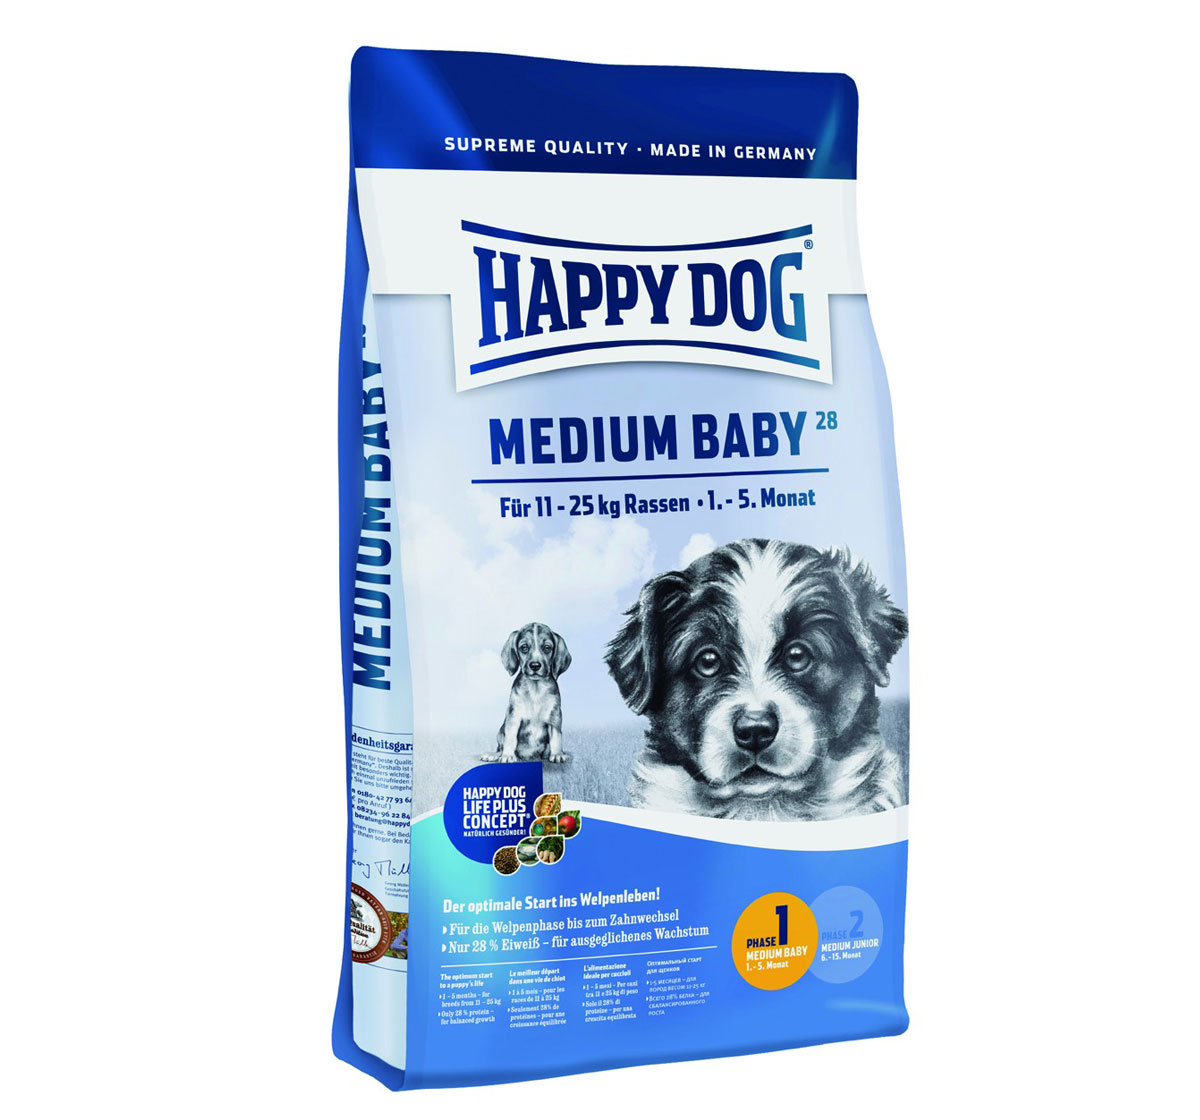 happy dog medium breed baby dog food 4 kg dogspot online pet supply store. Black Bedroom Furniture Sets. Home Design Ideas